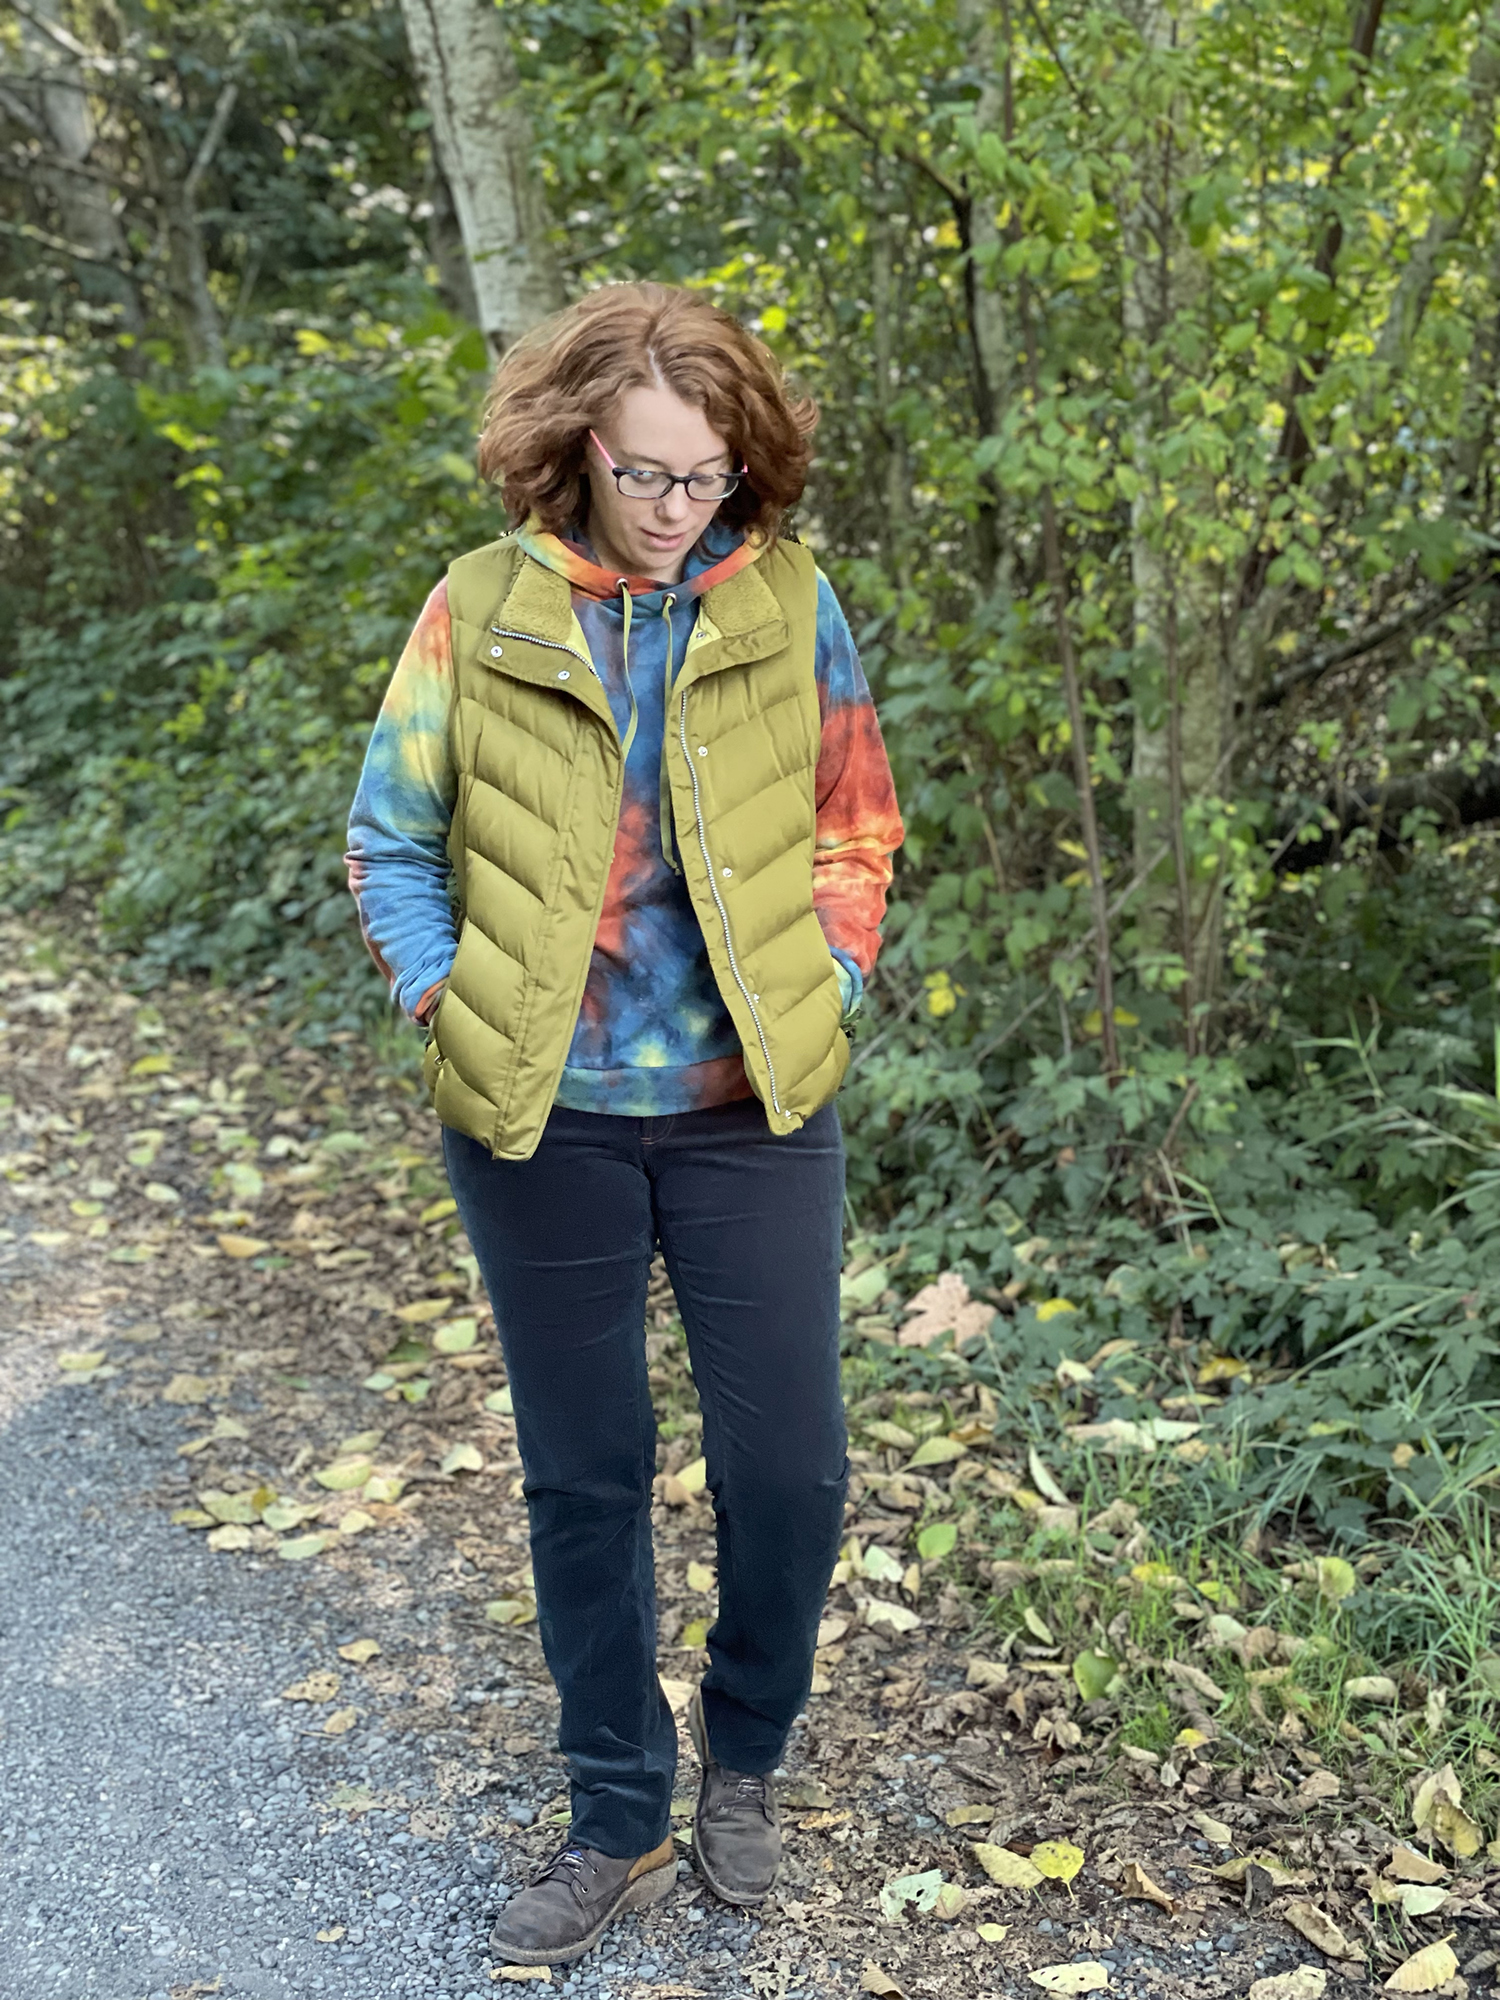 Compete Outfit—Page Hoodie + Ginger Jeans + Vest